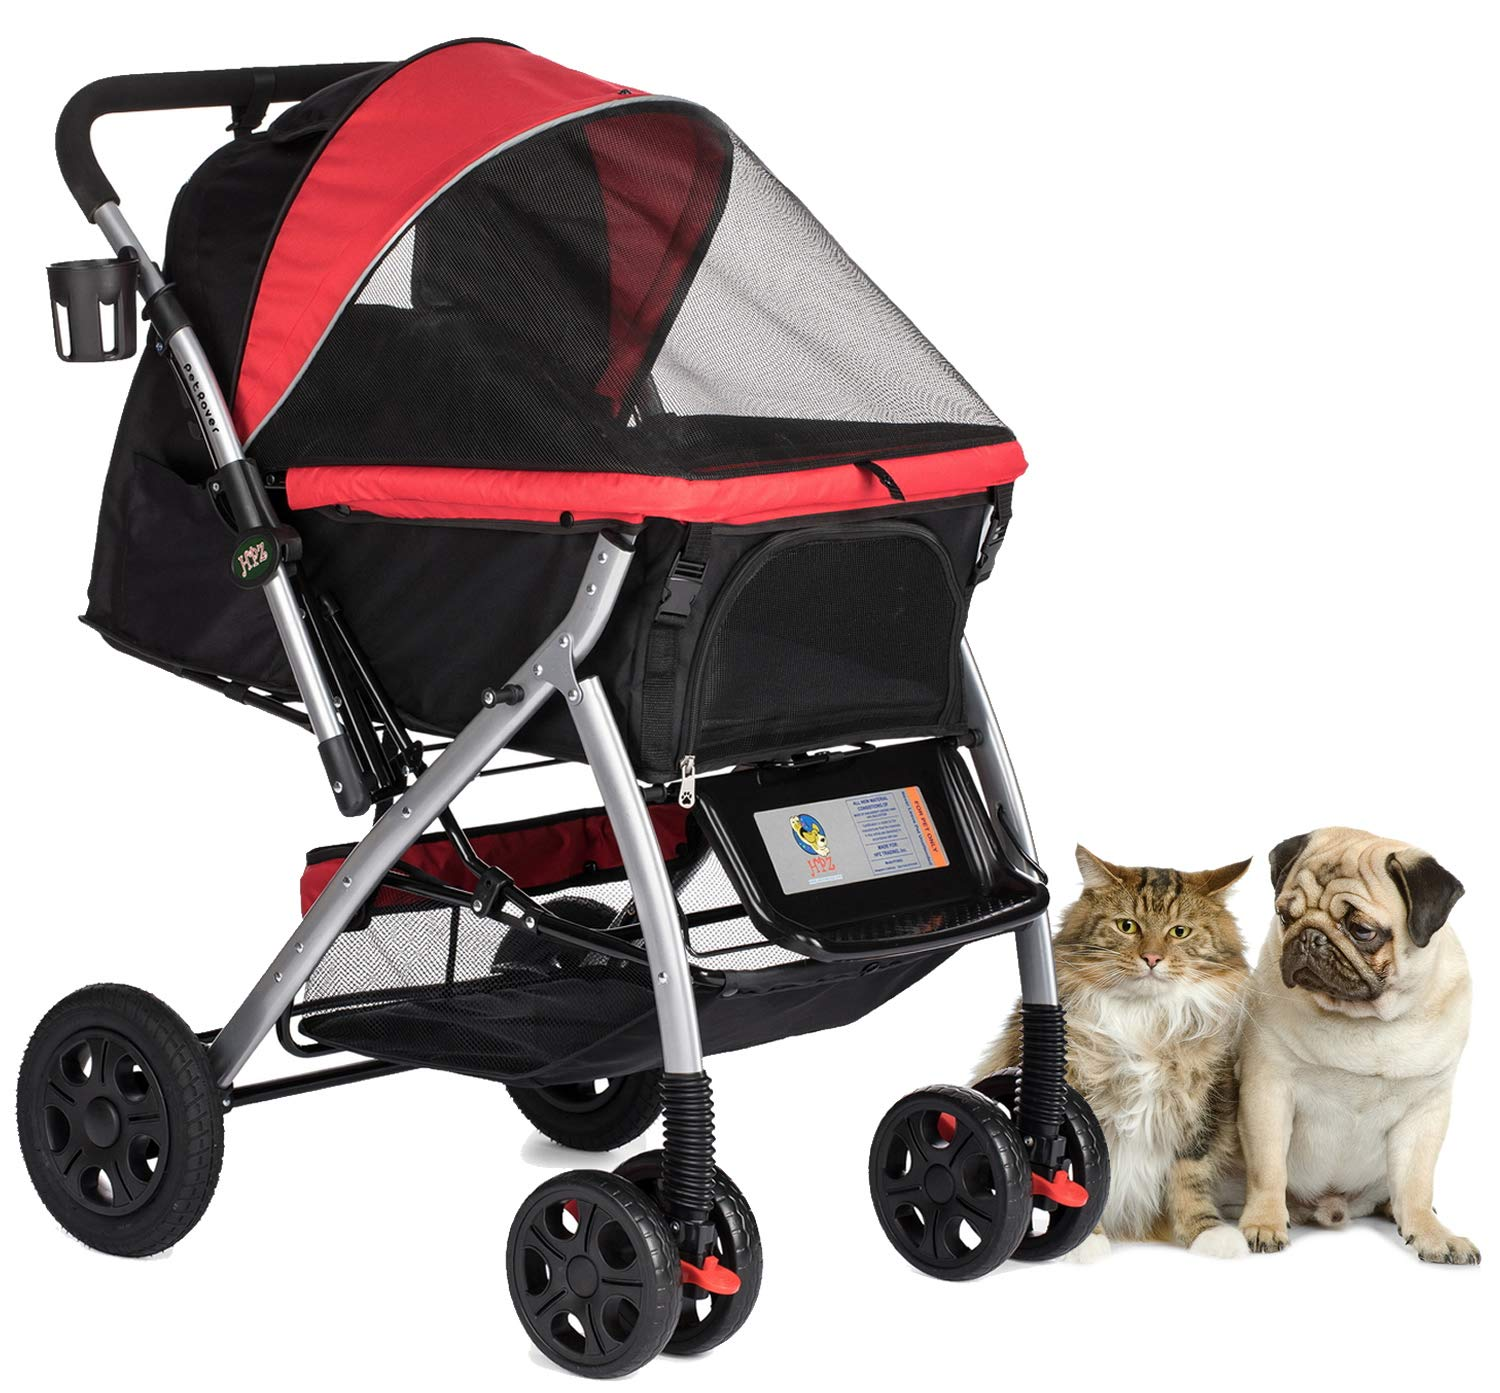 Red HPZ PET Rover Premium Heavy Duty Dog Cat Pet Stroller Travel Carriage with Congreenible Compartment Zipperless Entry Reversible Handlebar Pump-Free Rubber Tires for Small, Medium and Large Pets (Red)